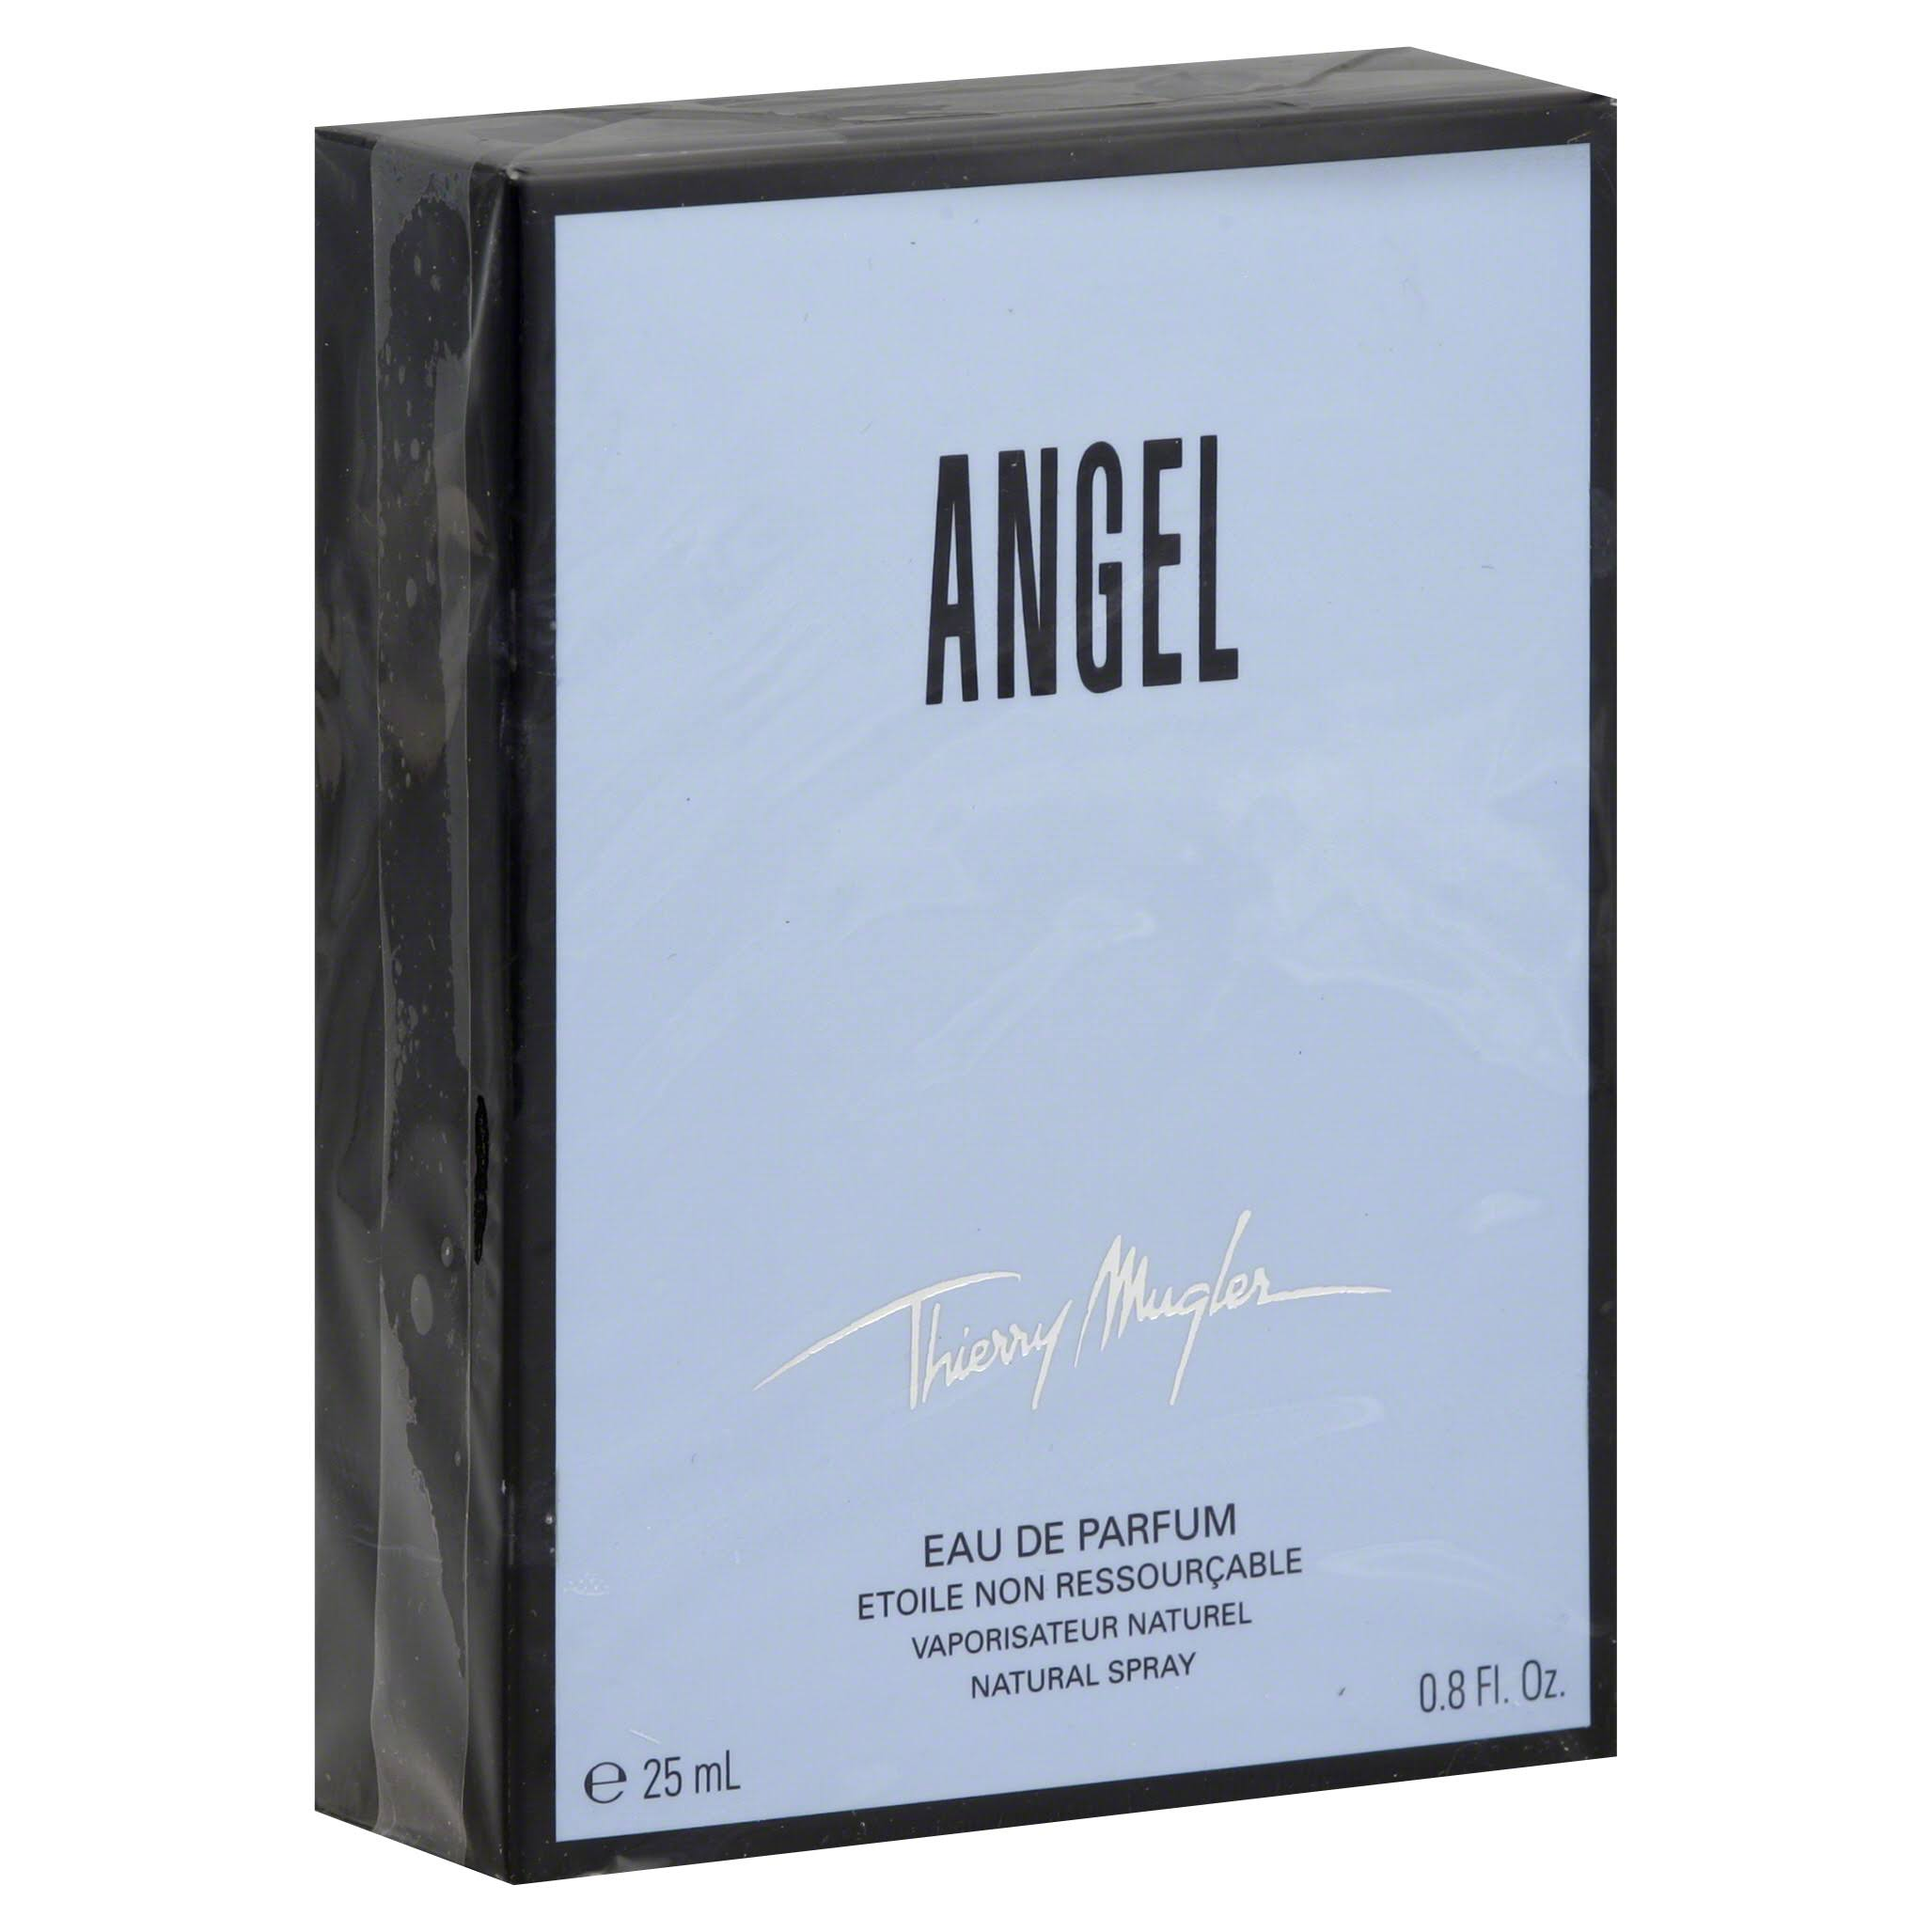 Thierry Mugler Angel Eau de Parfum Spray - 25ml